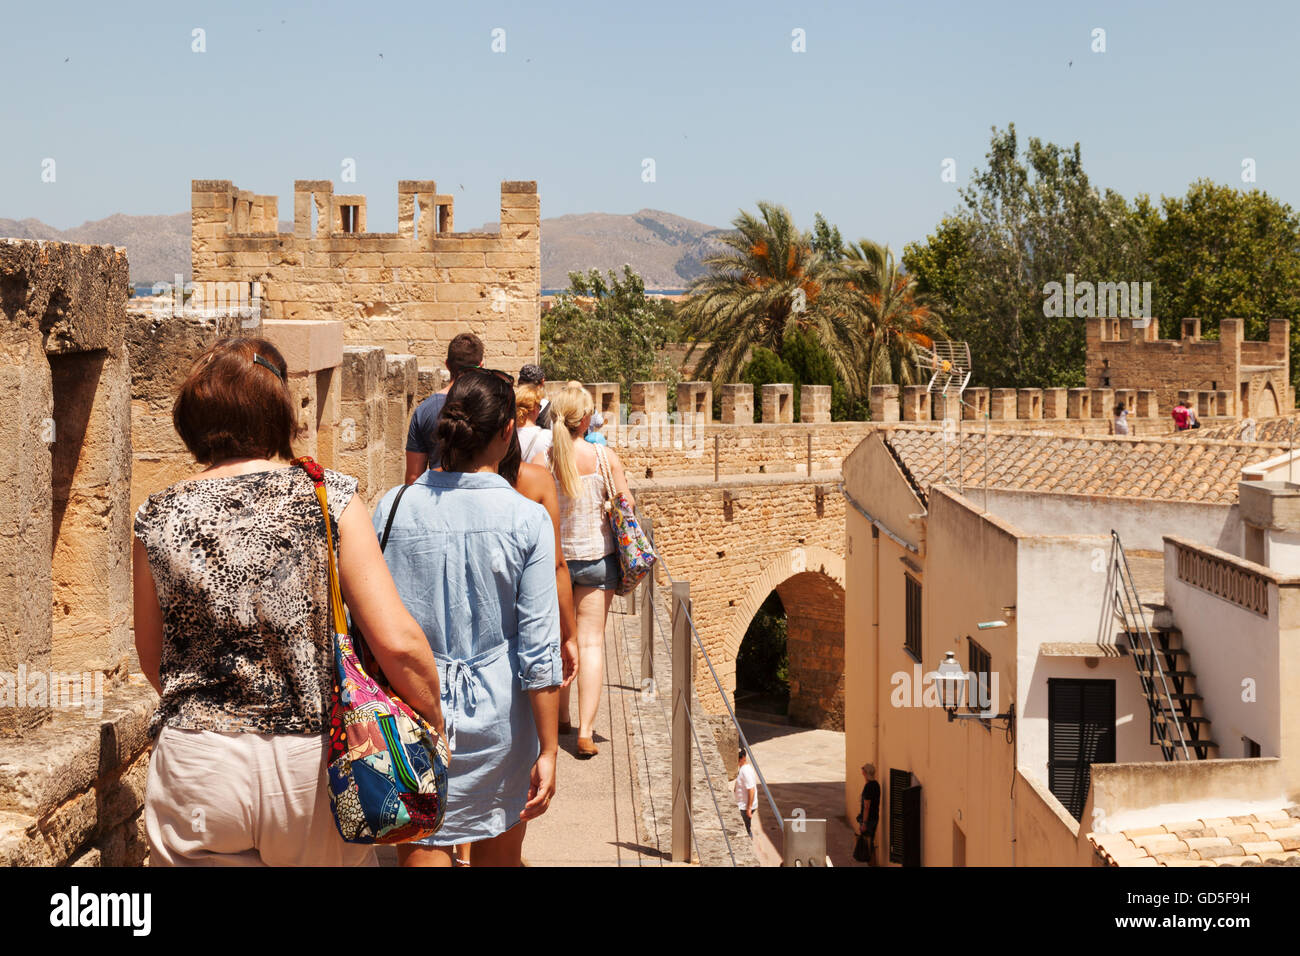 People walking the old town walls, Alcudia, Mallorca, ( Majorca ), Balearic Islands, Spain Europe - Stock Image